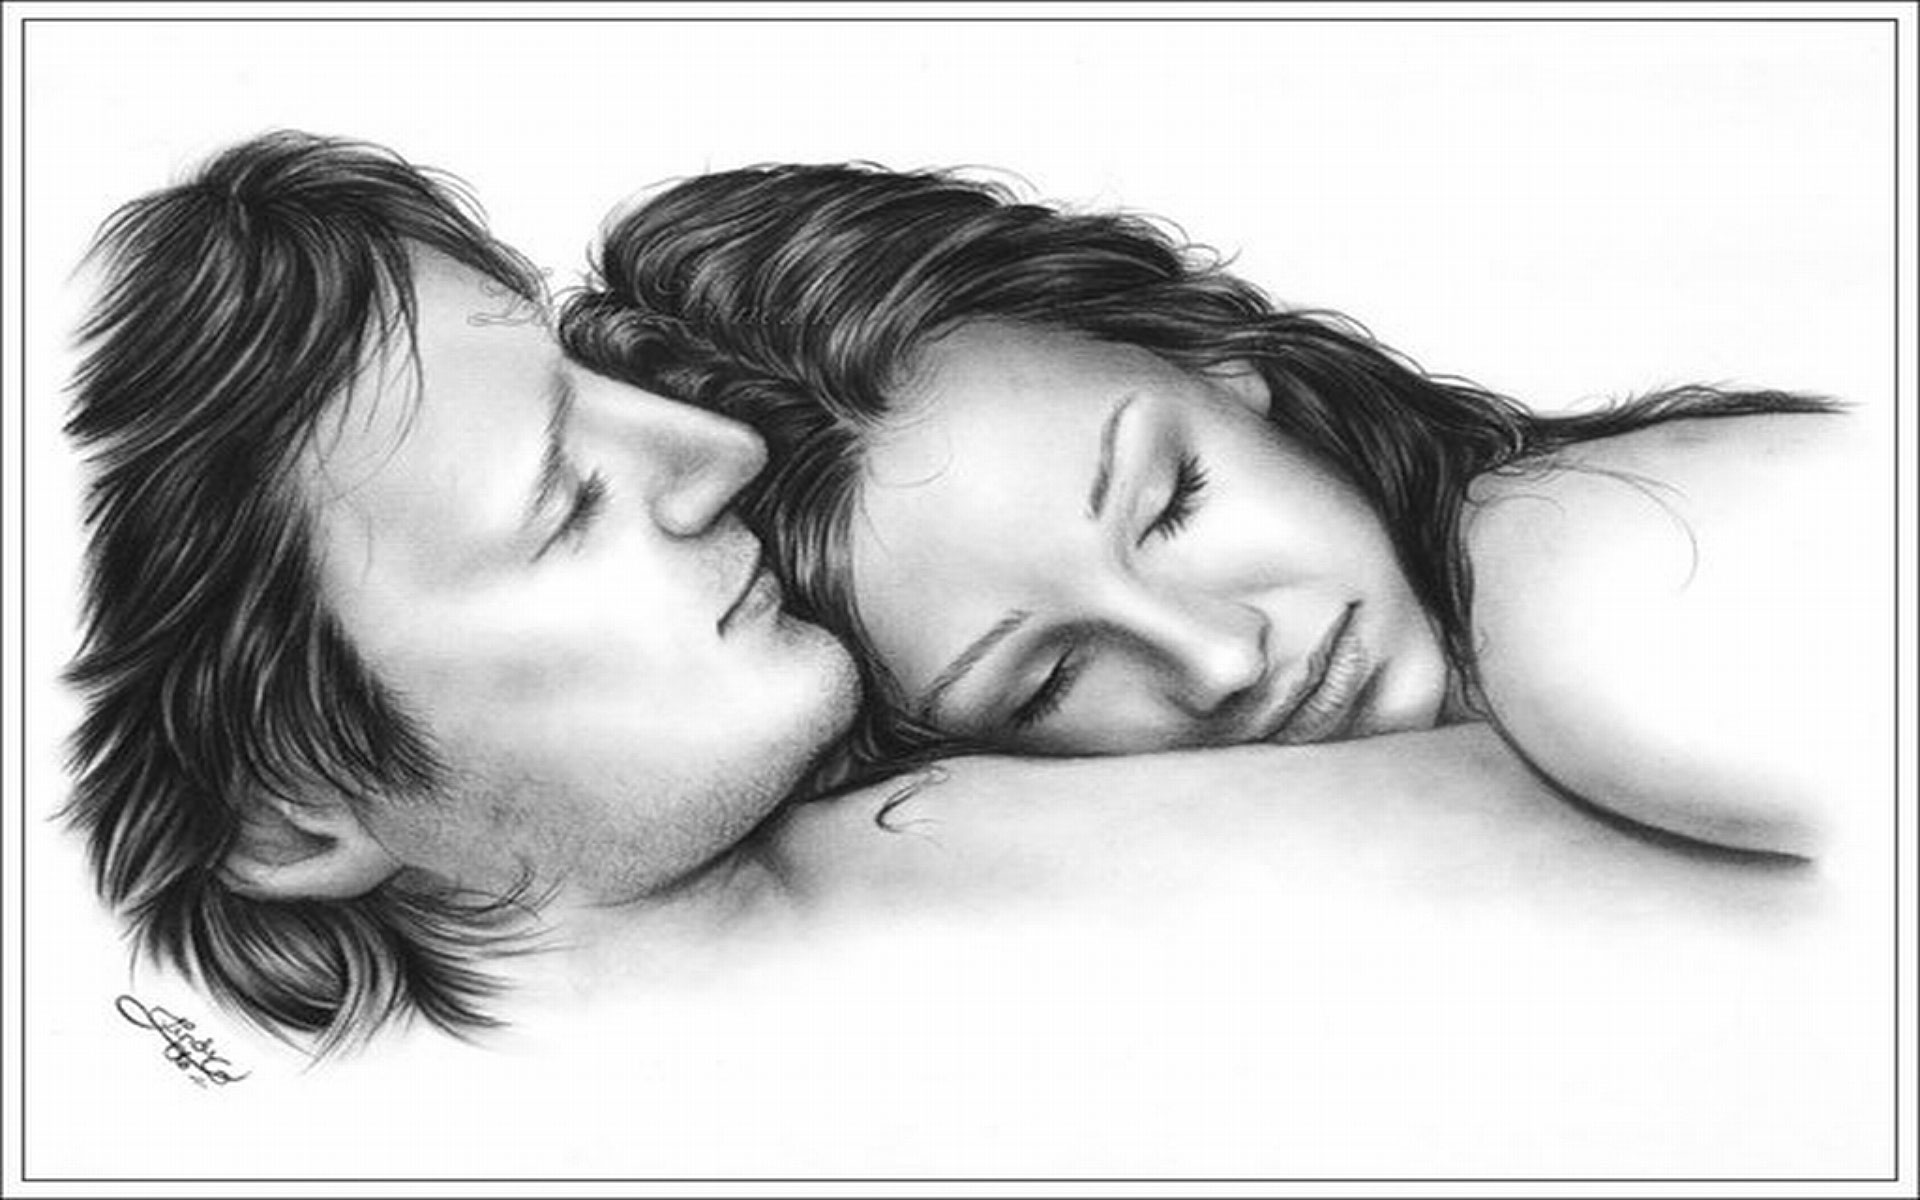 Cute Love Couple Kissing Wallpaper Cute Love Drawings Pencil Art Hd Romantic Sketch Wallpaper